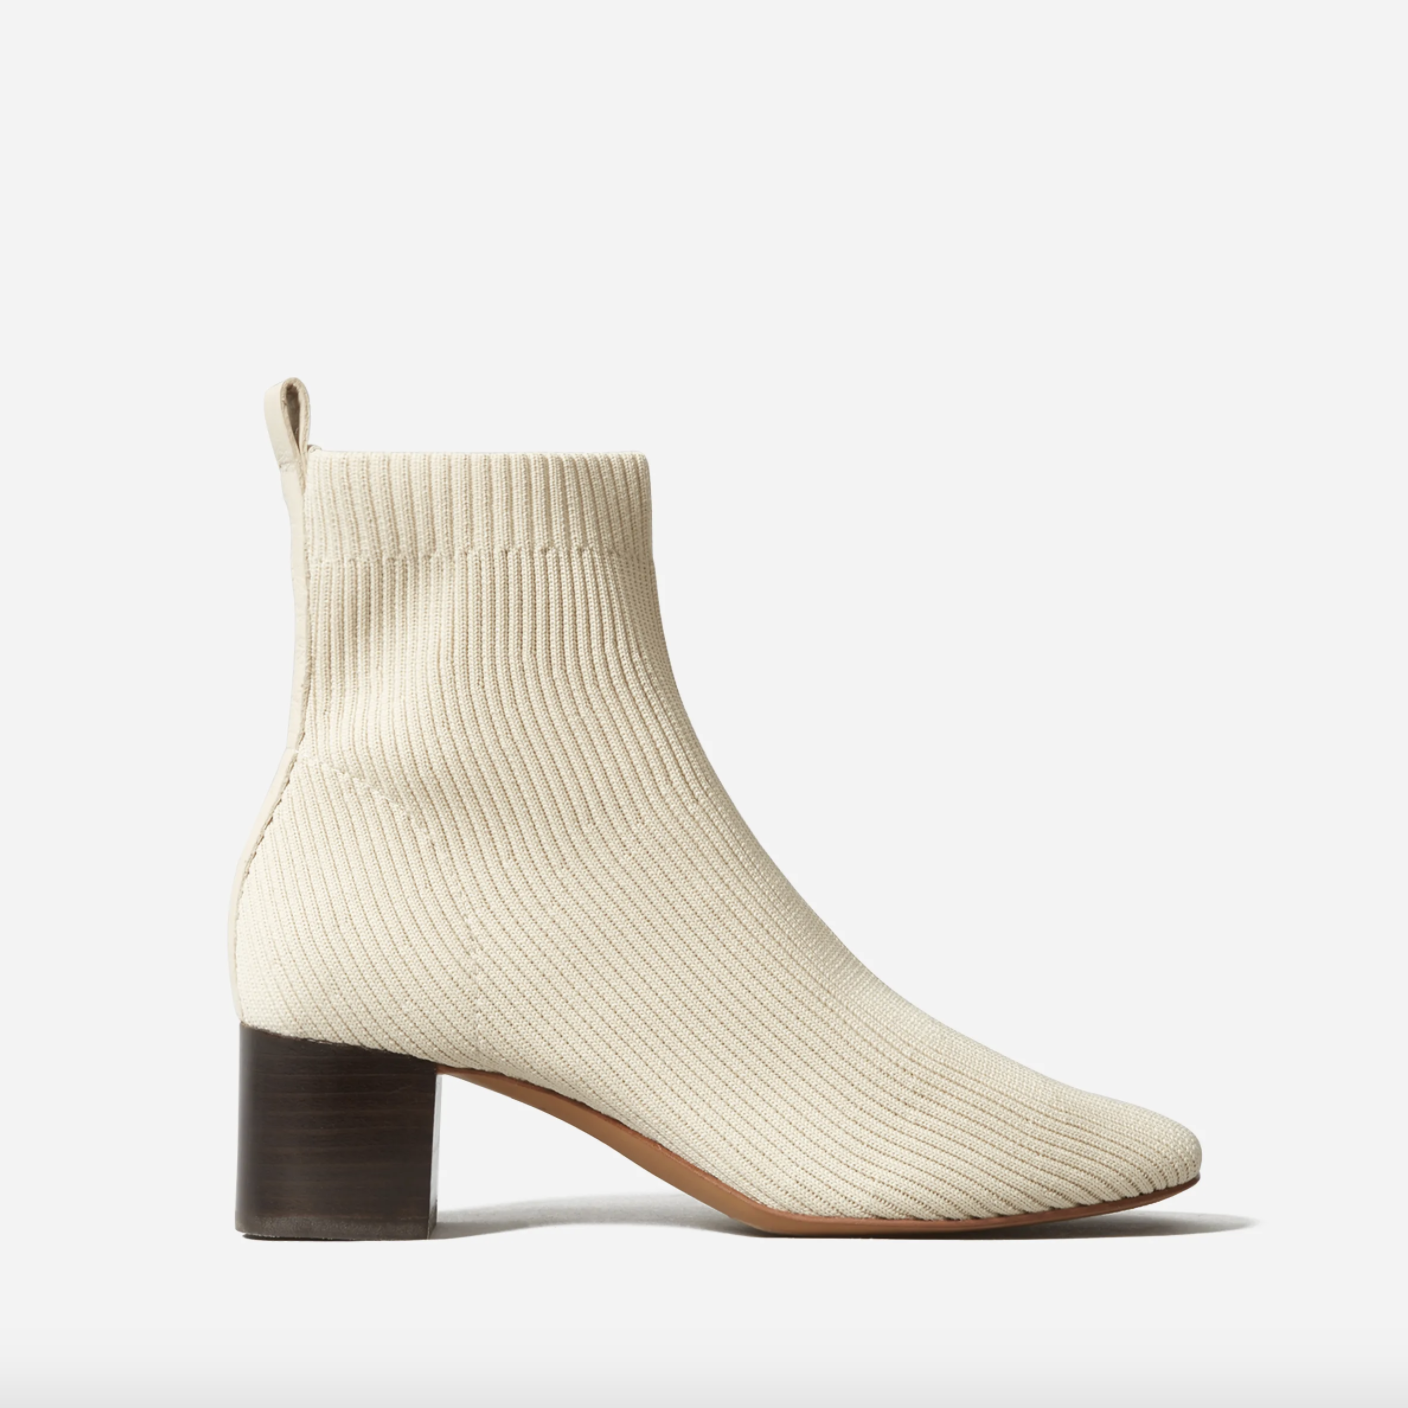 everlane knit bootie bone